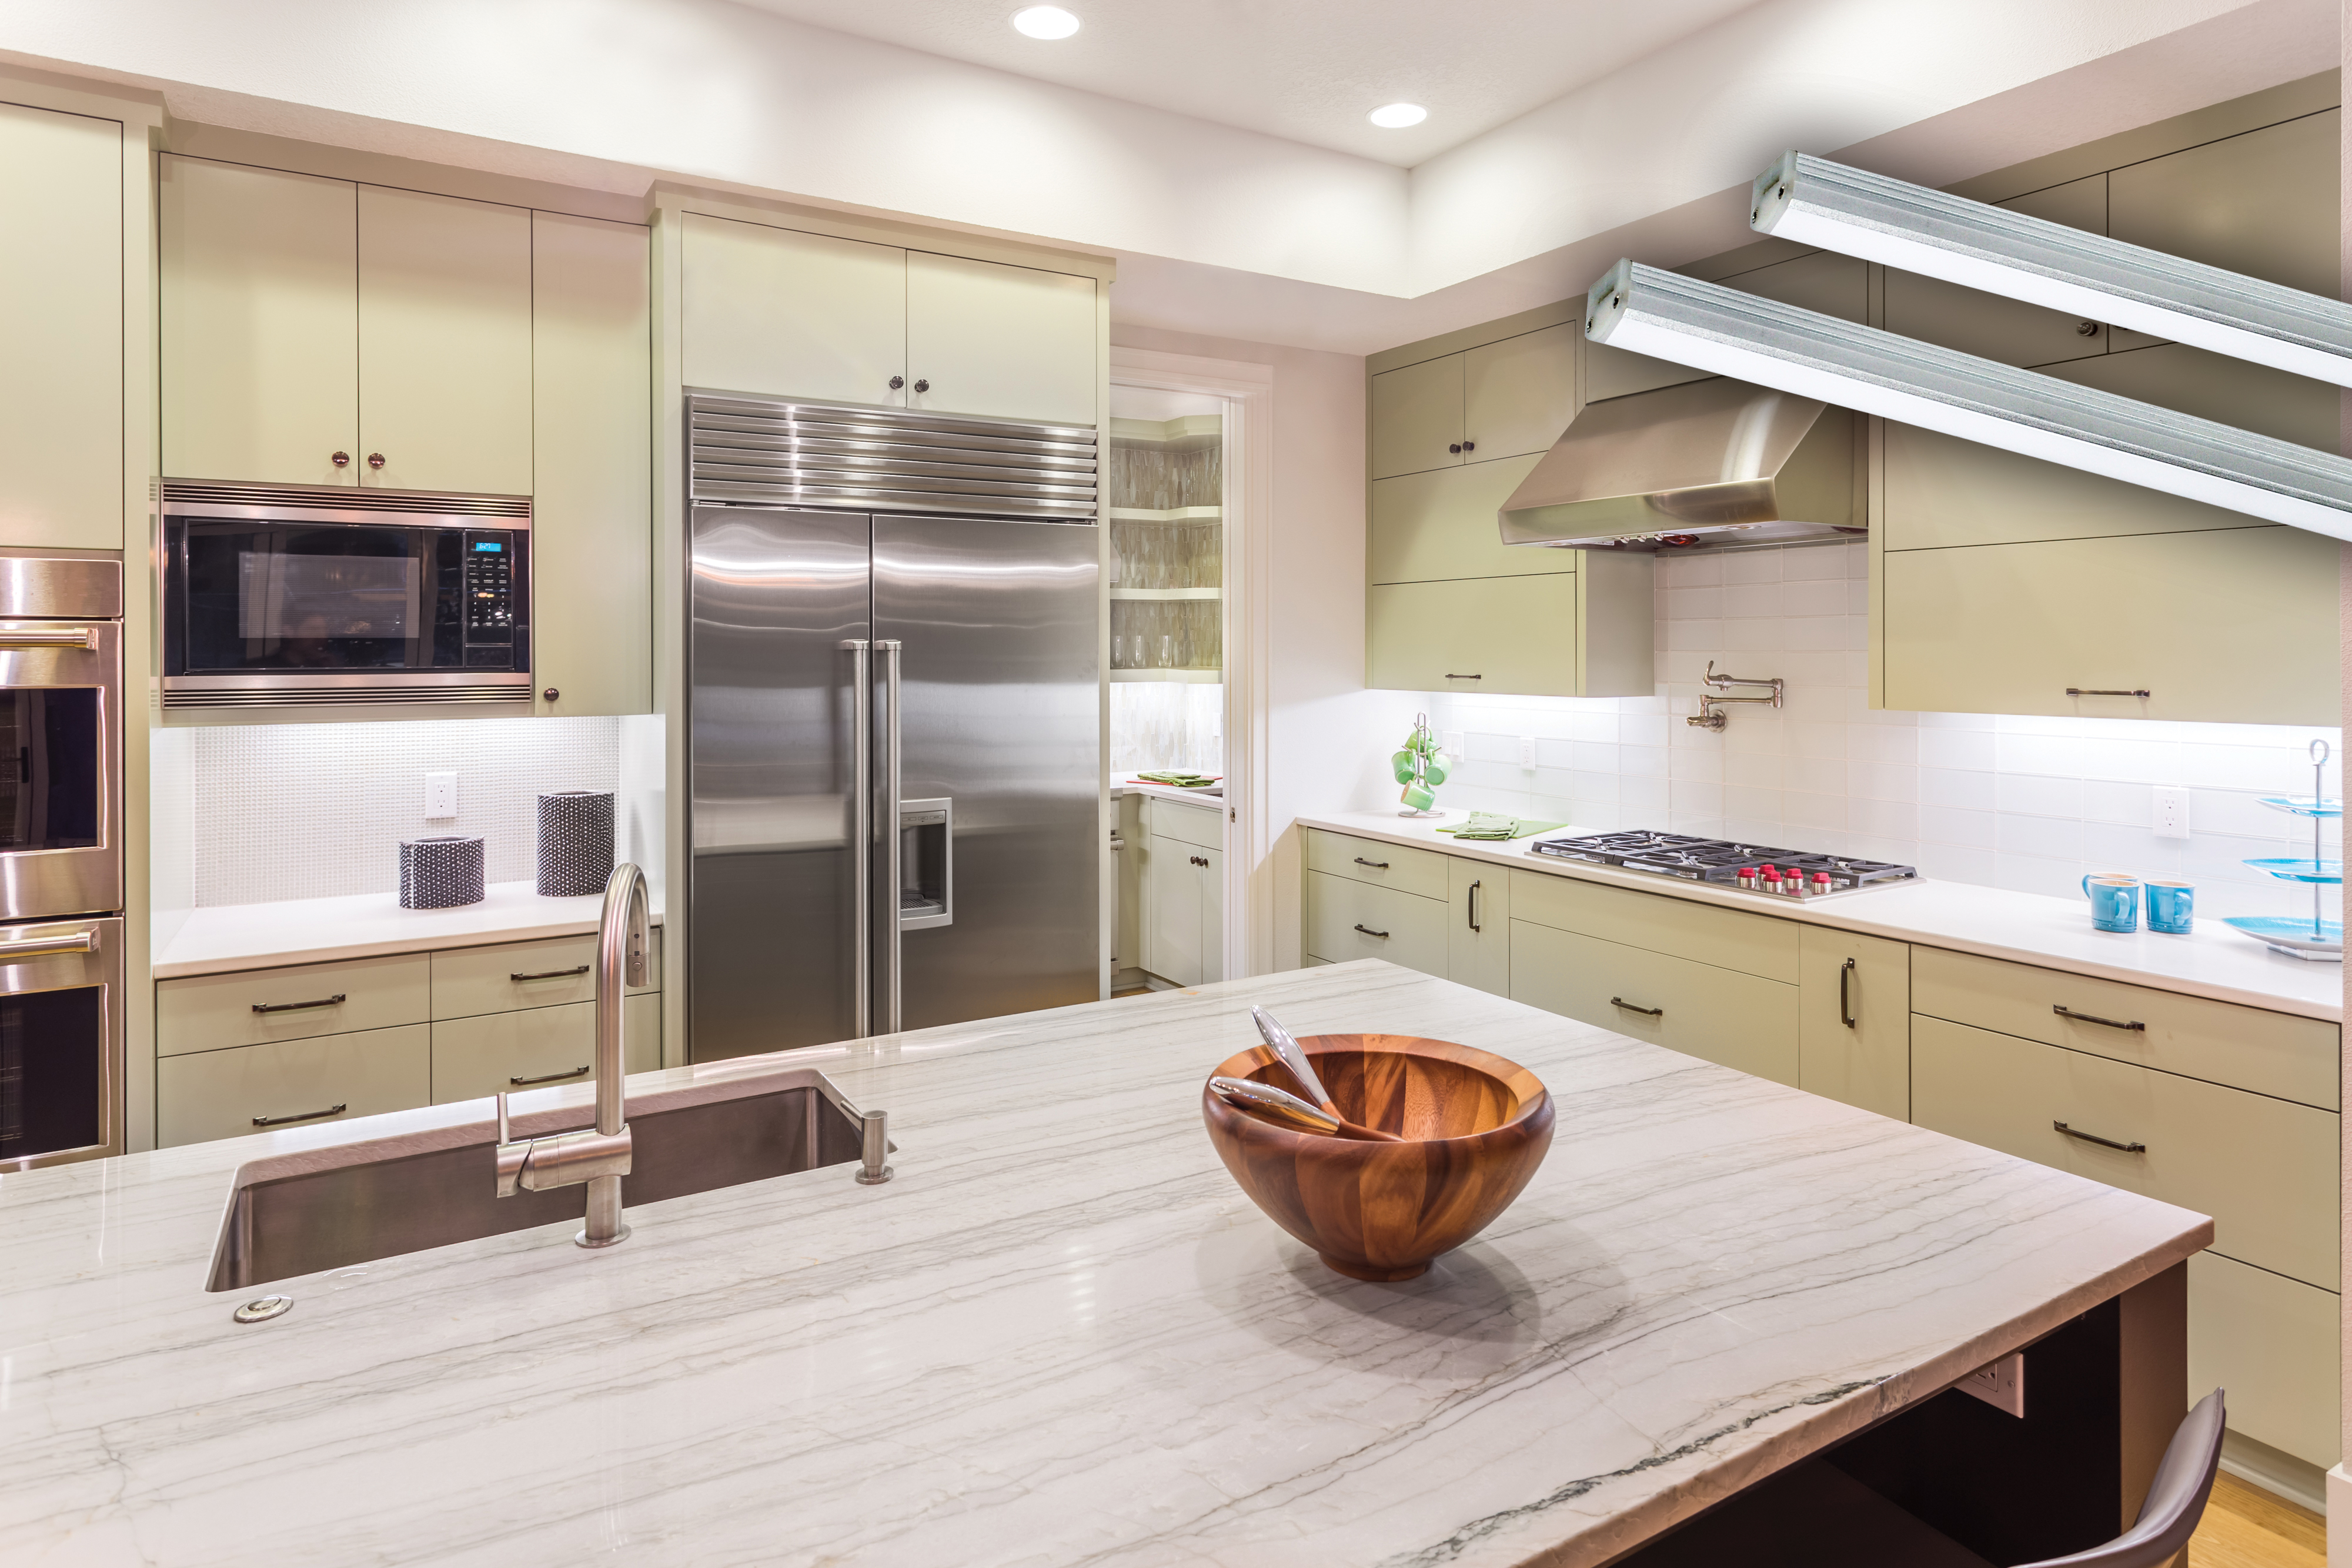 Best under cabinet lighting - Q What Is The Best Way To Avoid Glare On A Granite Counter When Using Under Cabinet Lighting